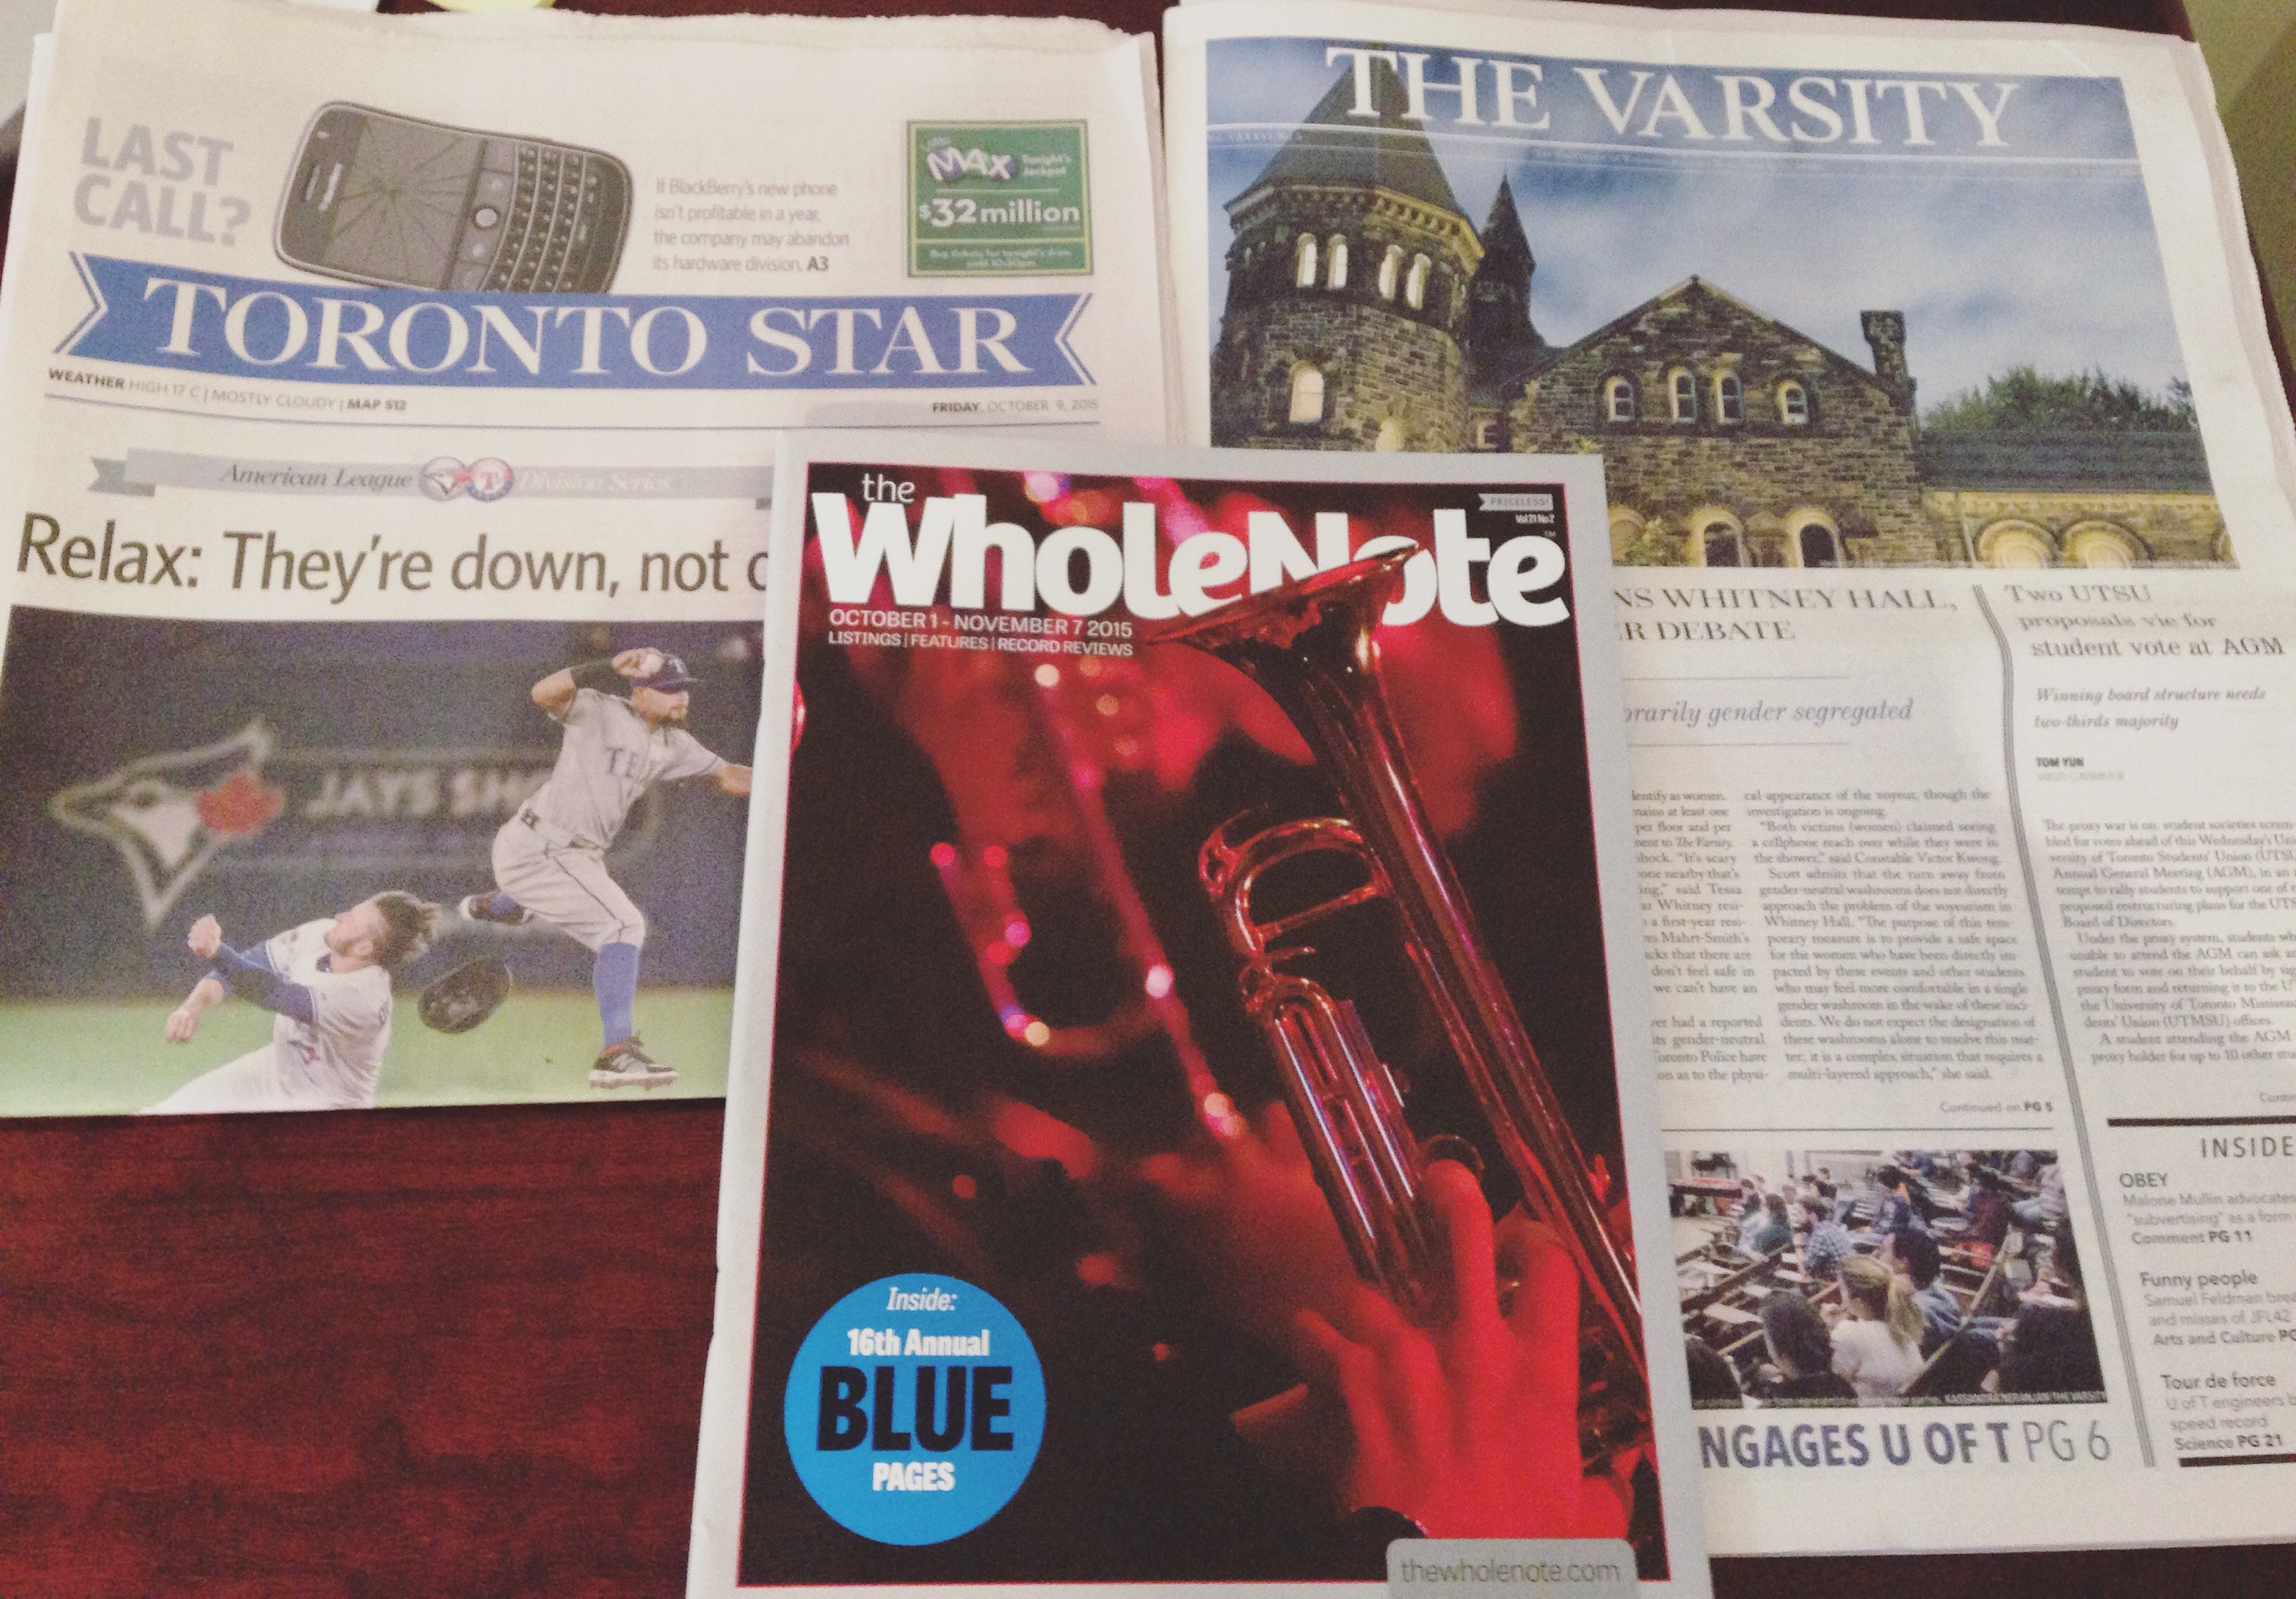 Toronto Star newspaper, The Varsity newspaper, and the Whole Note magazine strewn across my desk.